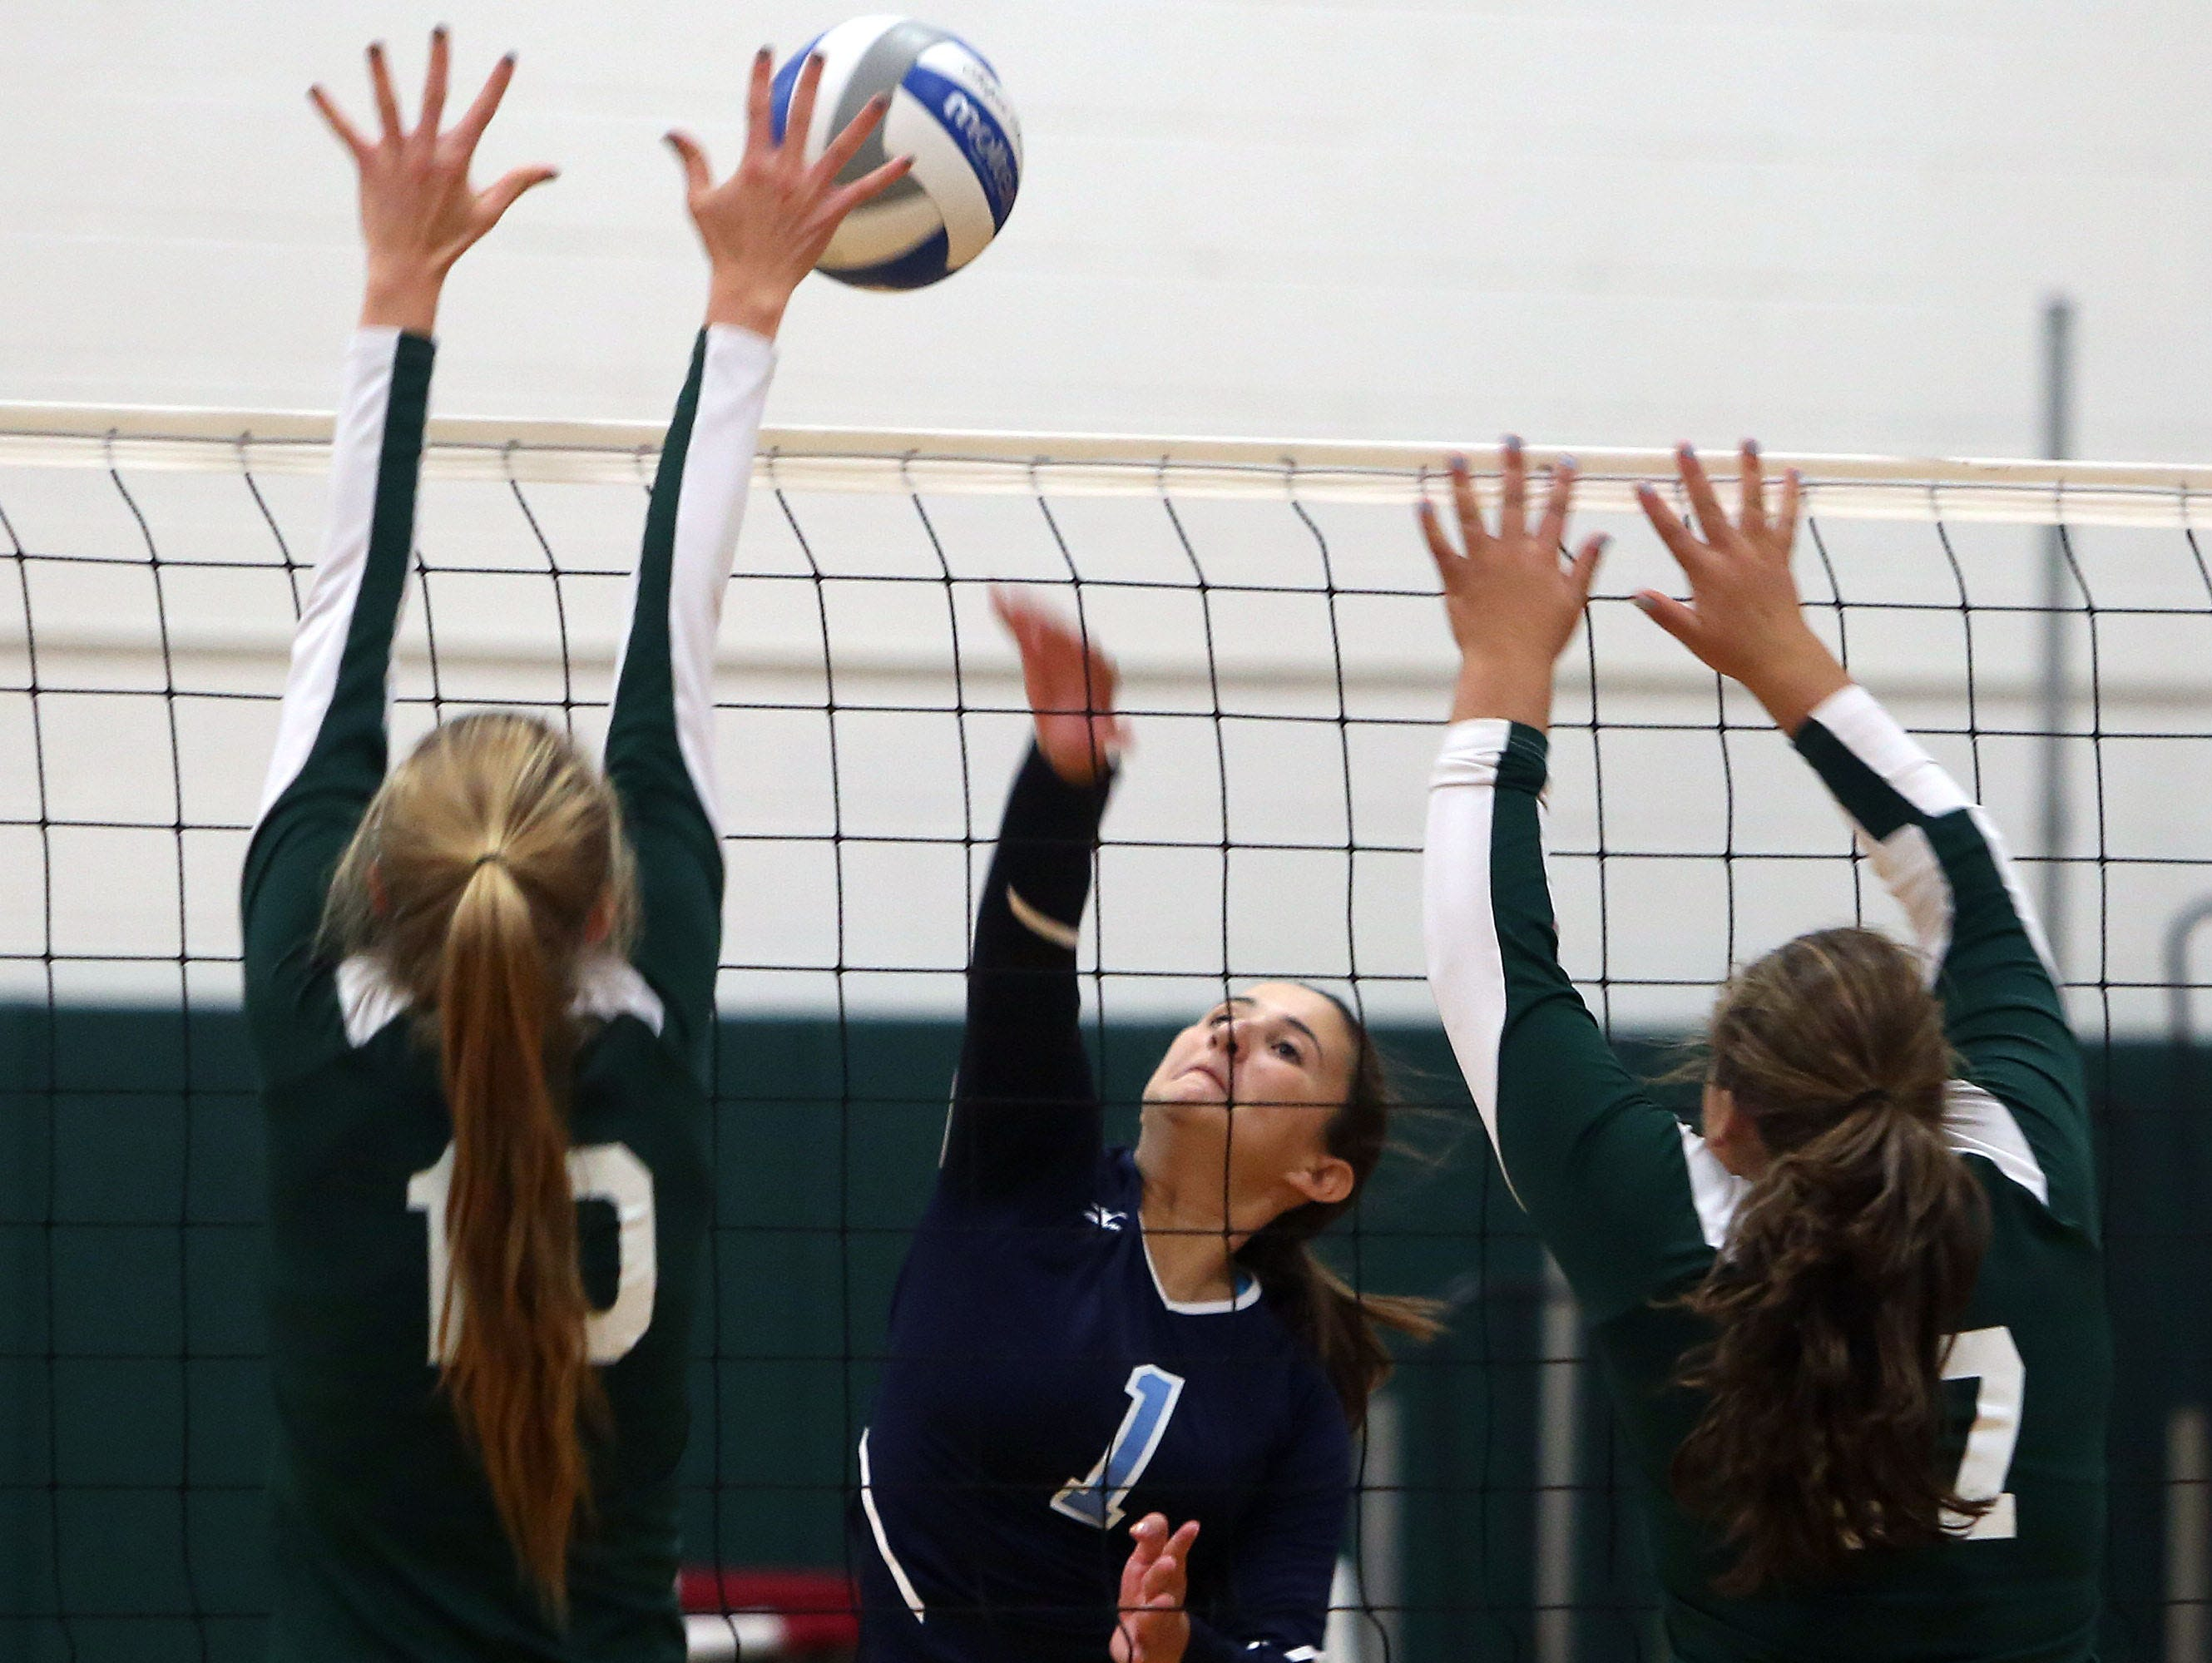 Westlake's Angelina Guarnieri (1) gets a shot by Pleasantville's Annie Stockel (10) and Isabelle Minerva (17) during volleyball action at Pleasantville High School Sept. 30, 2015.